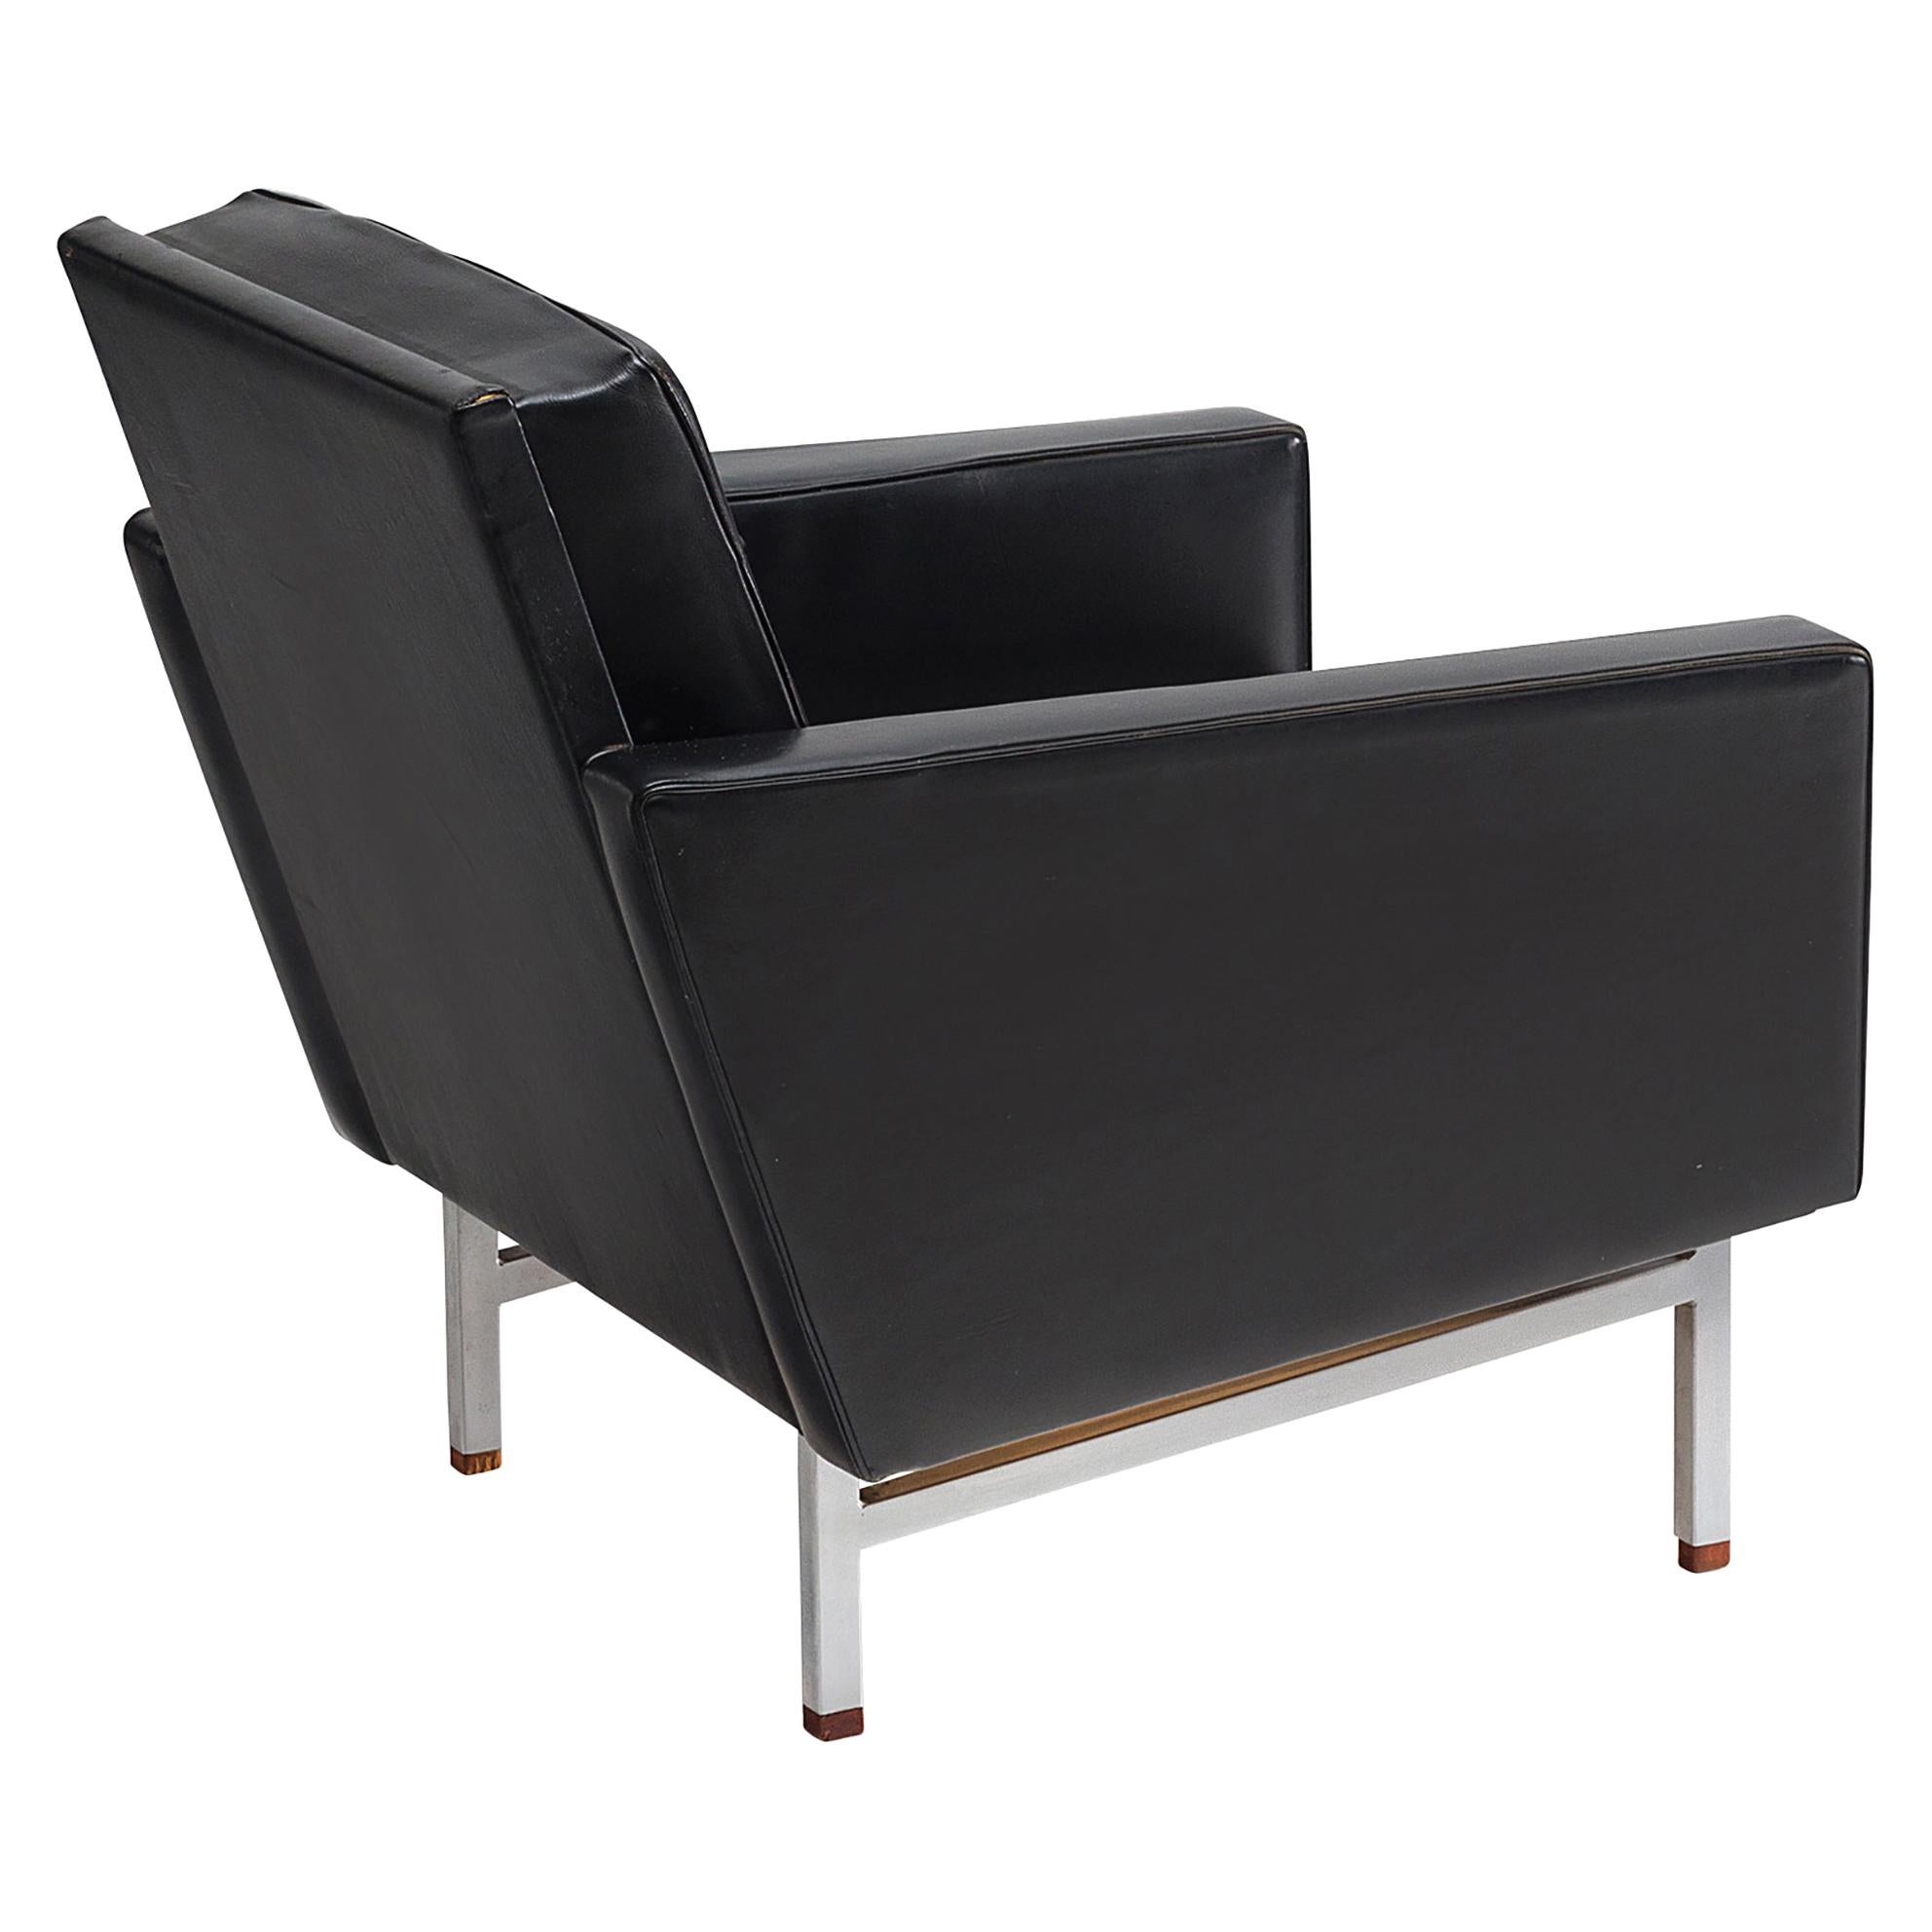 Karl Erik Ekselius Armchair in Original Black Leather